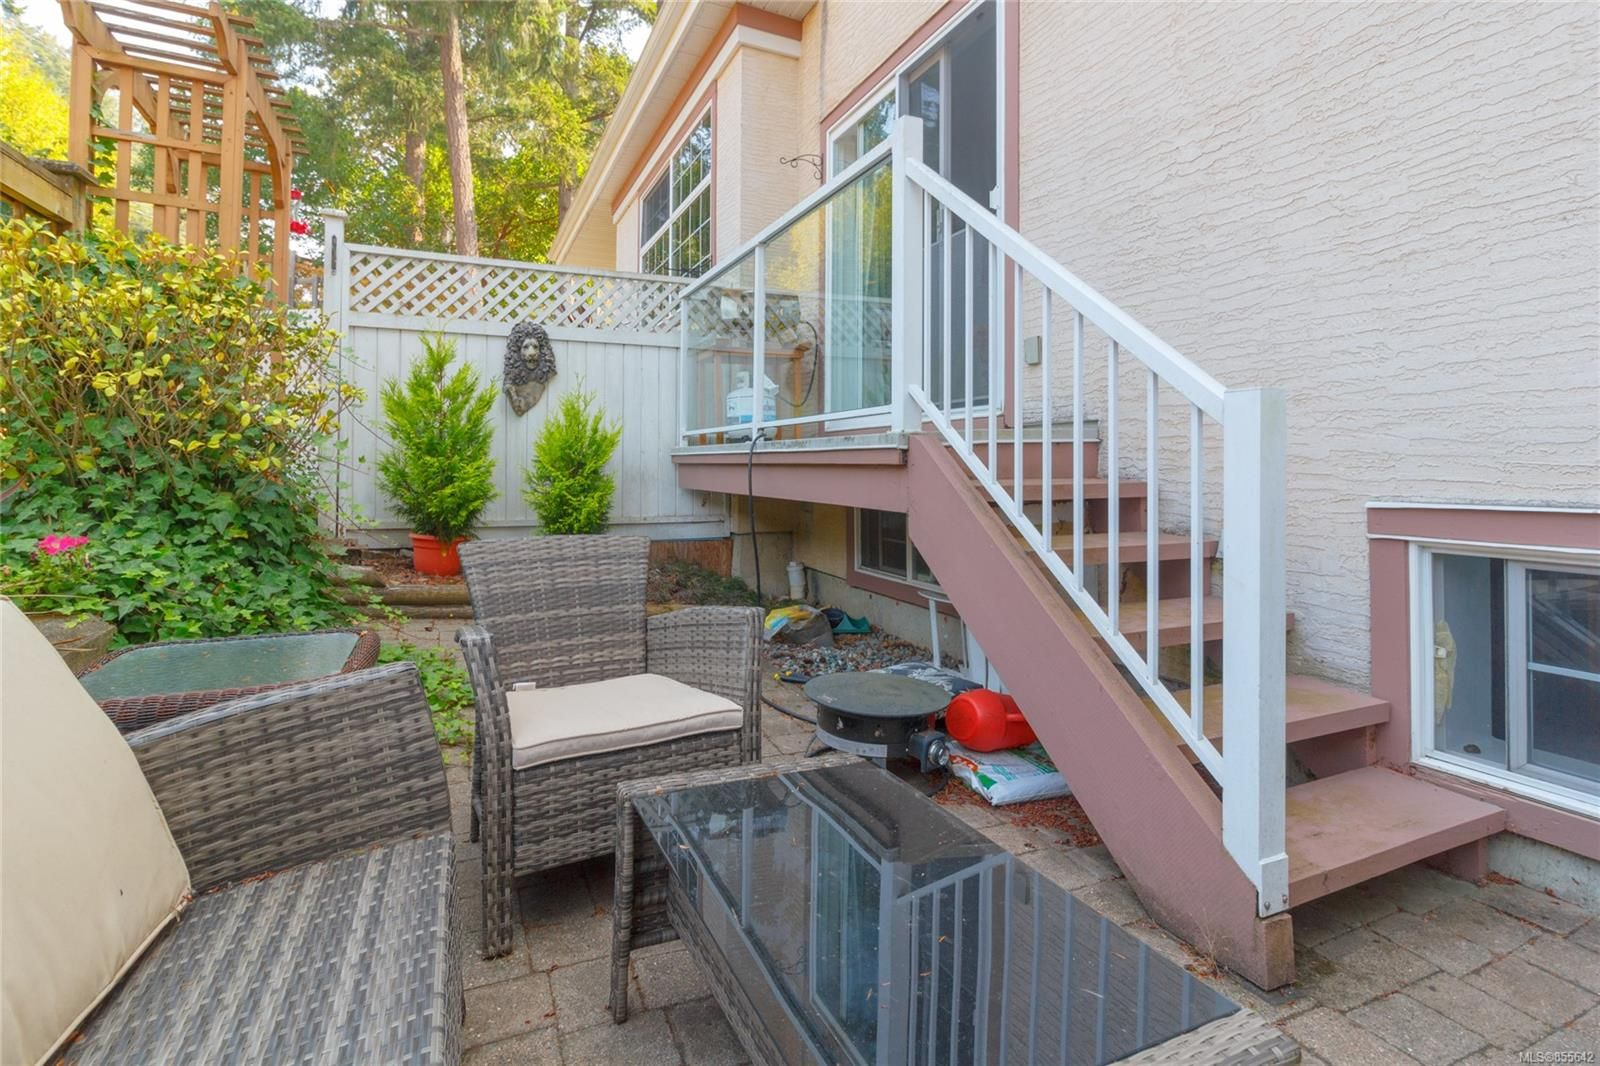 Photo 23: Photos: 52 14 Erskine Lane in : VR Hospital Row/Townhouse for sale (View Royal)  : MLS®# 855642